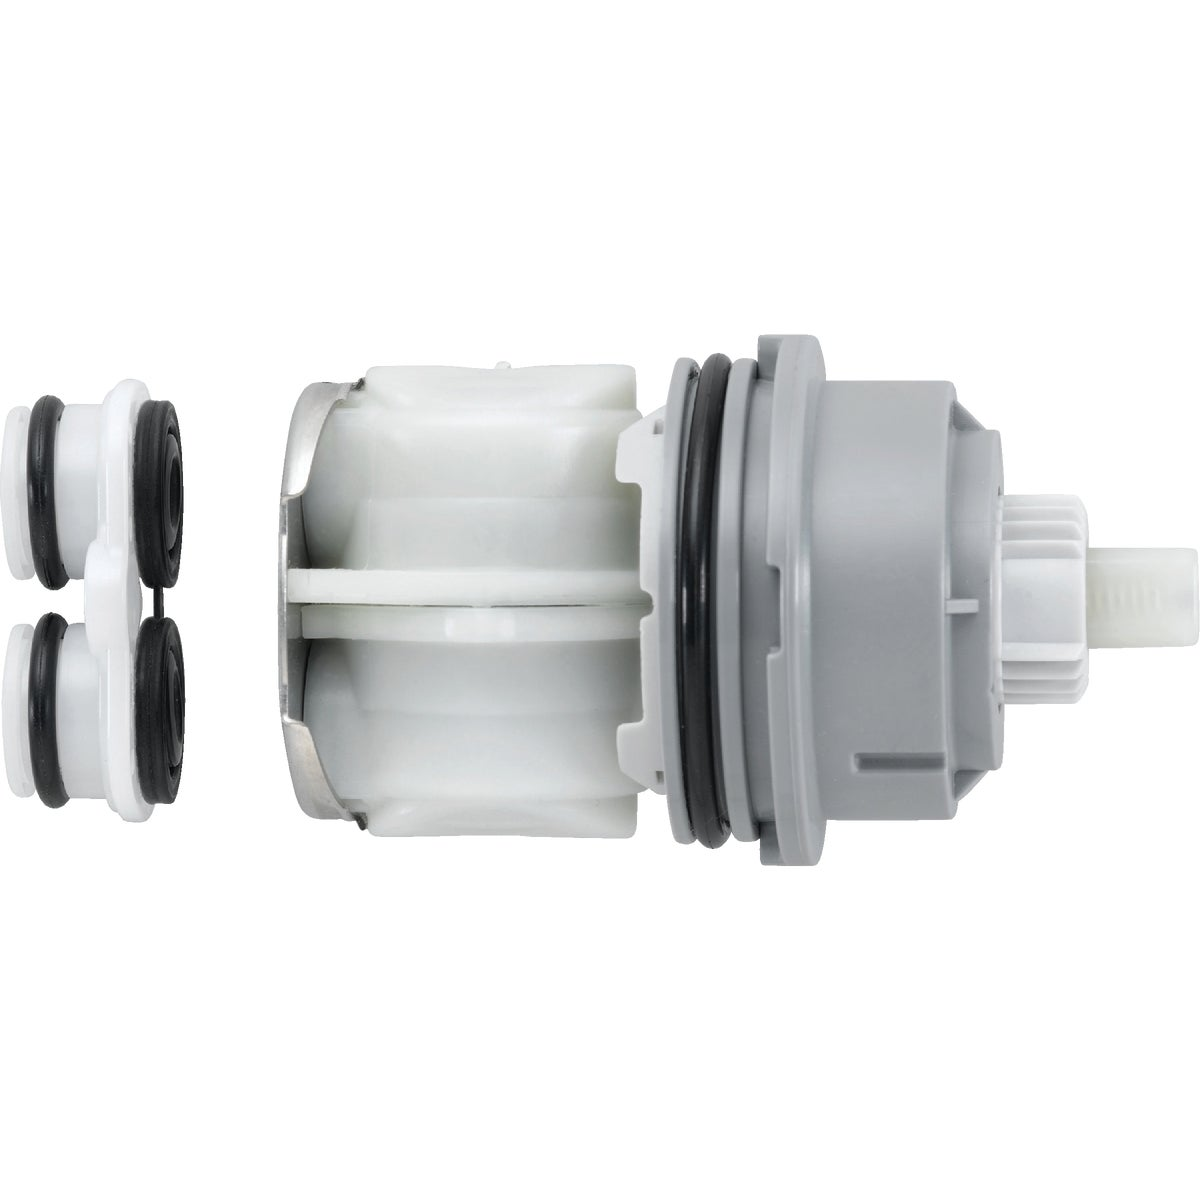 TUB SHOWER CARTRIDGE - RP46463 by Delta Faucet Co